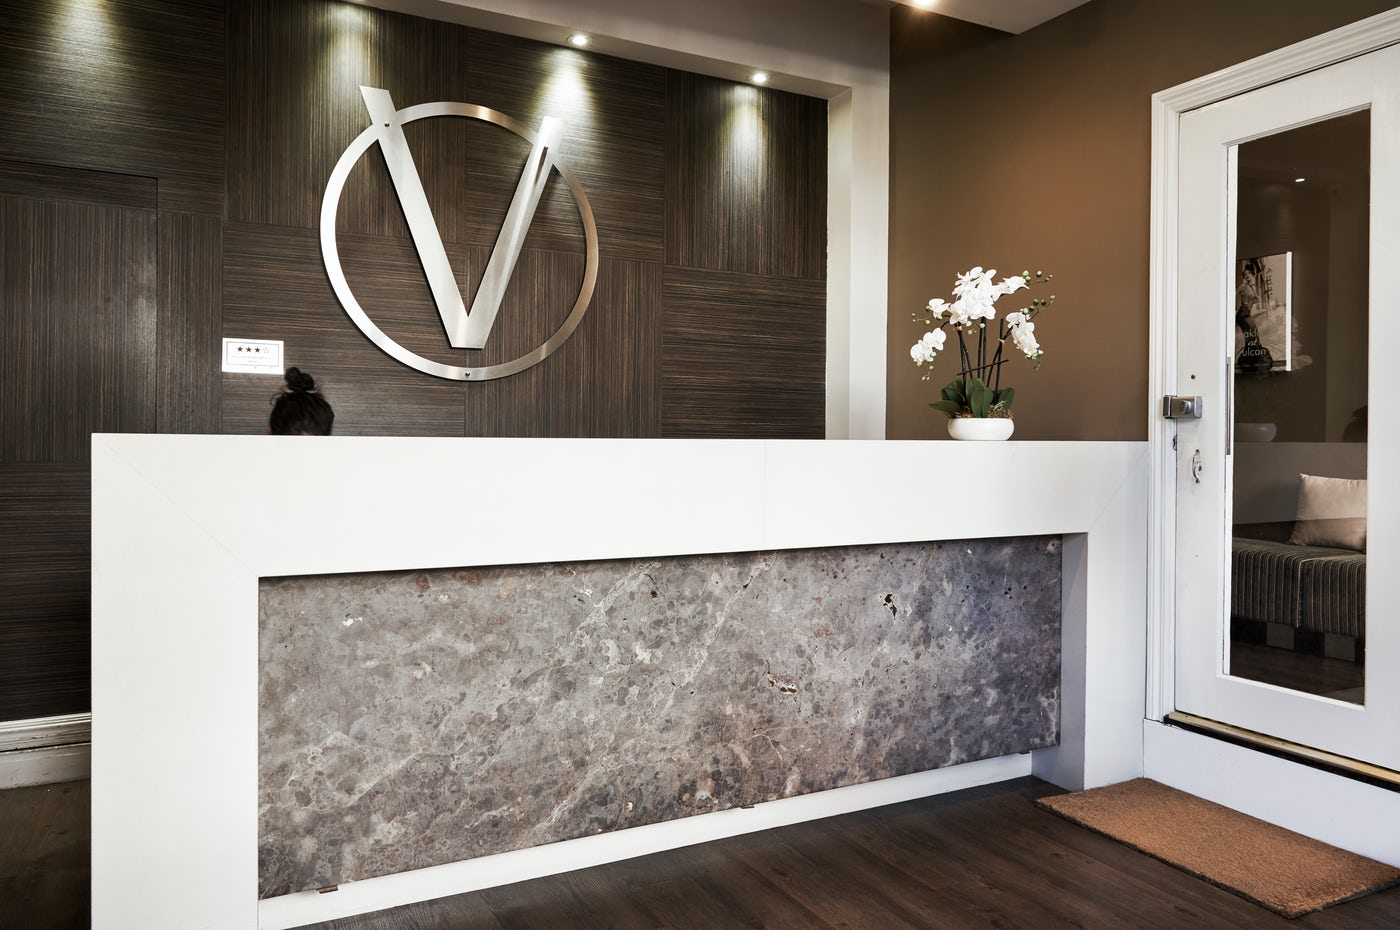 Welcoming Everyone to their Boutique Sydney Accommodation - Vulcan Hotel, Ultimo